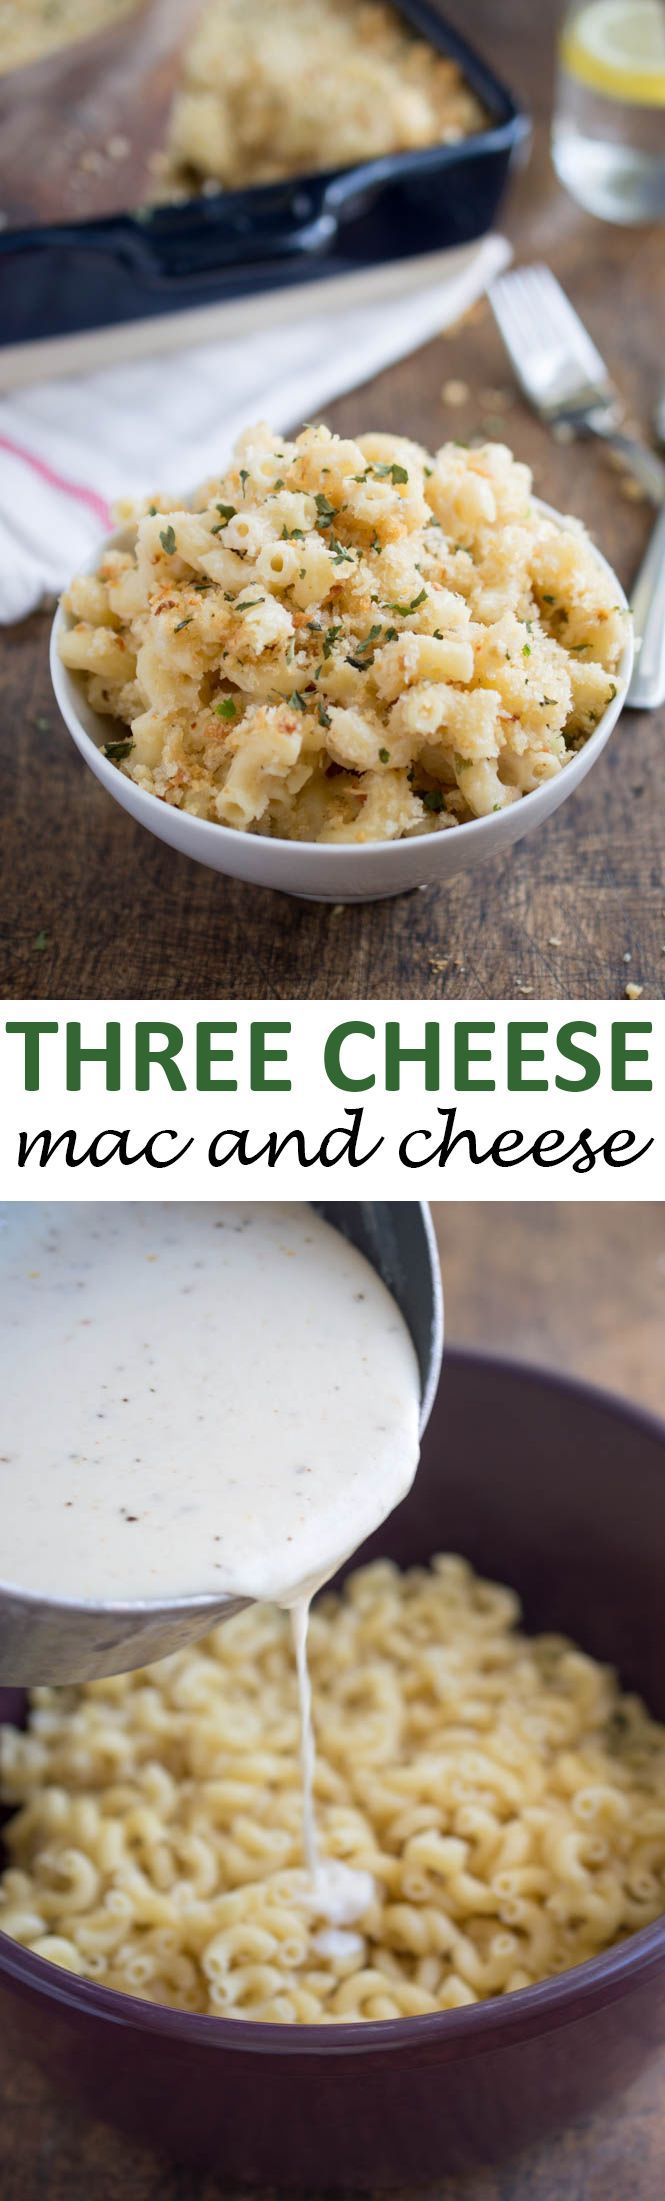 Creamy Three Cheese Mac and Cheese With Garlic Panko Breadcrumbs. A super easy 30 minute side dish! | sub cheese with animal rennet and (blood) enzymes for one without those - Cabot has some great cheese I like!